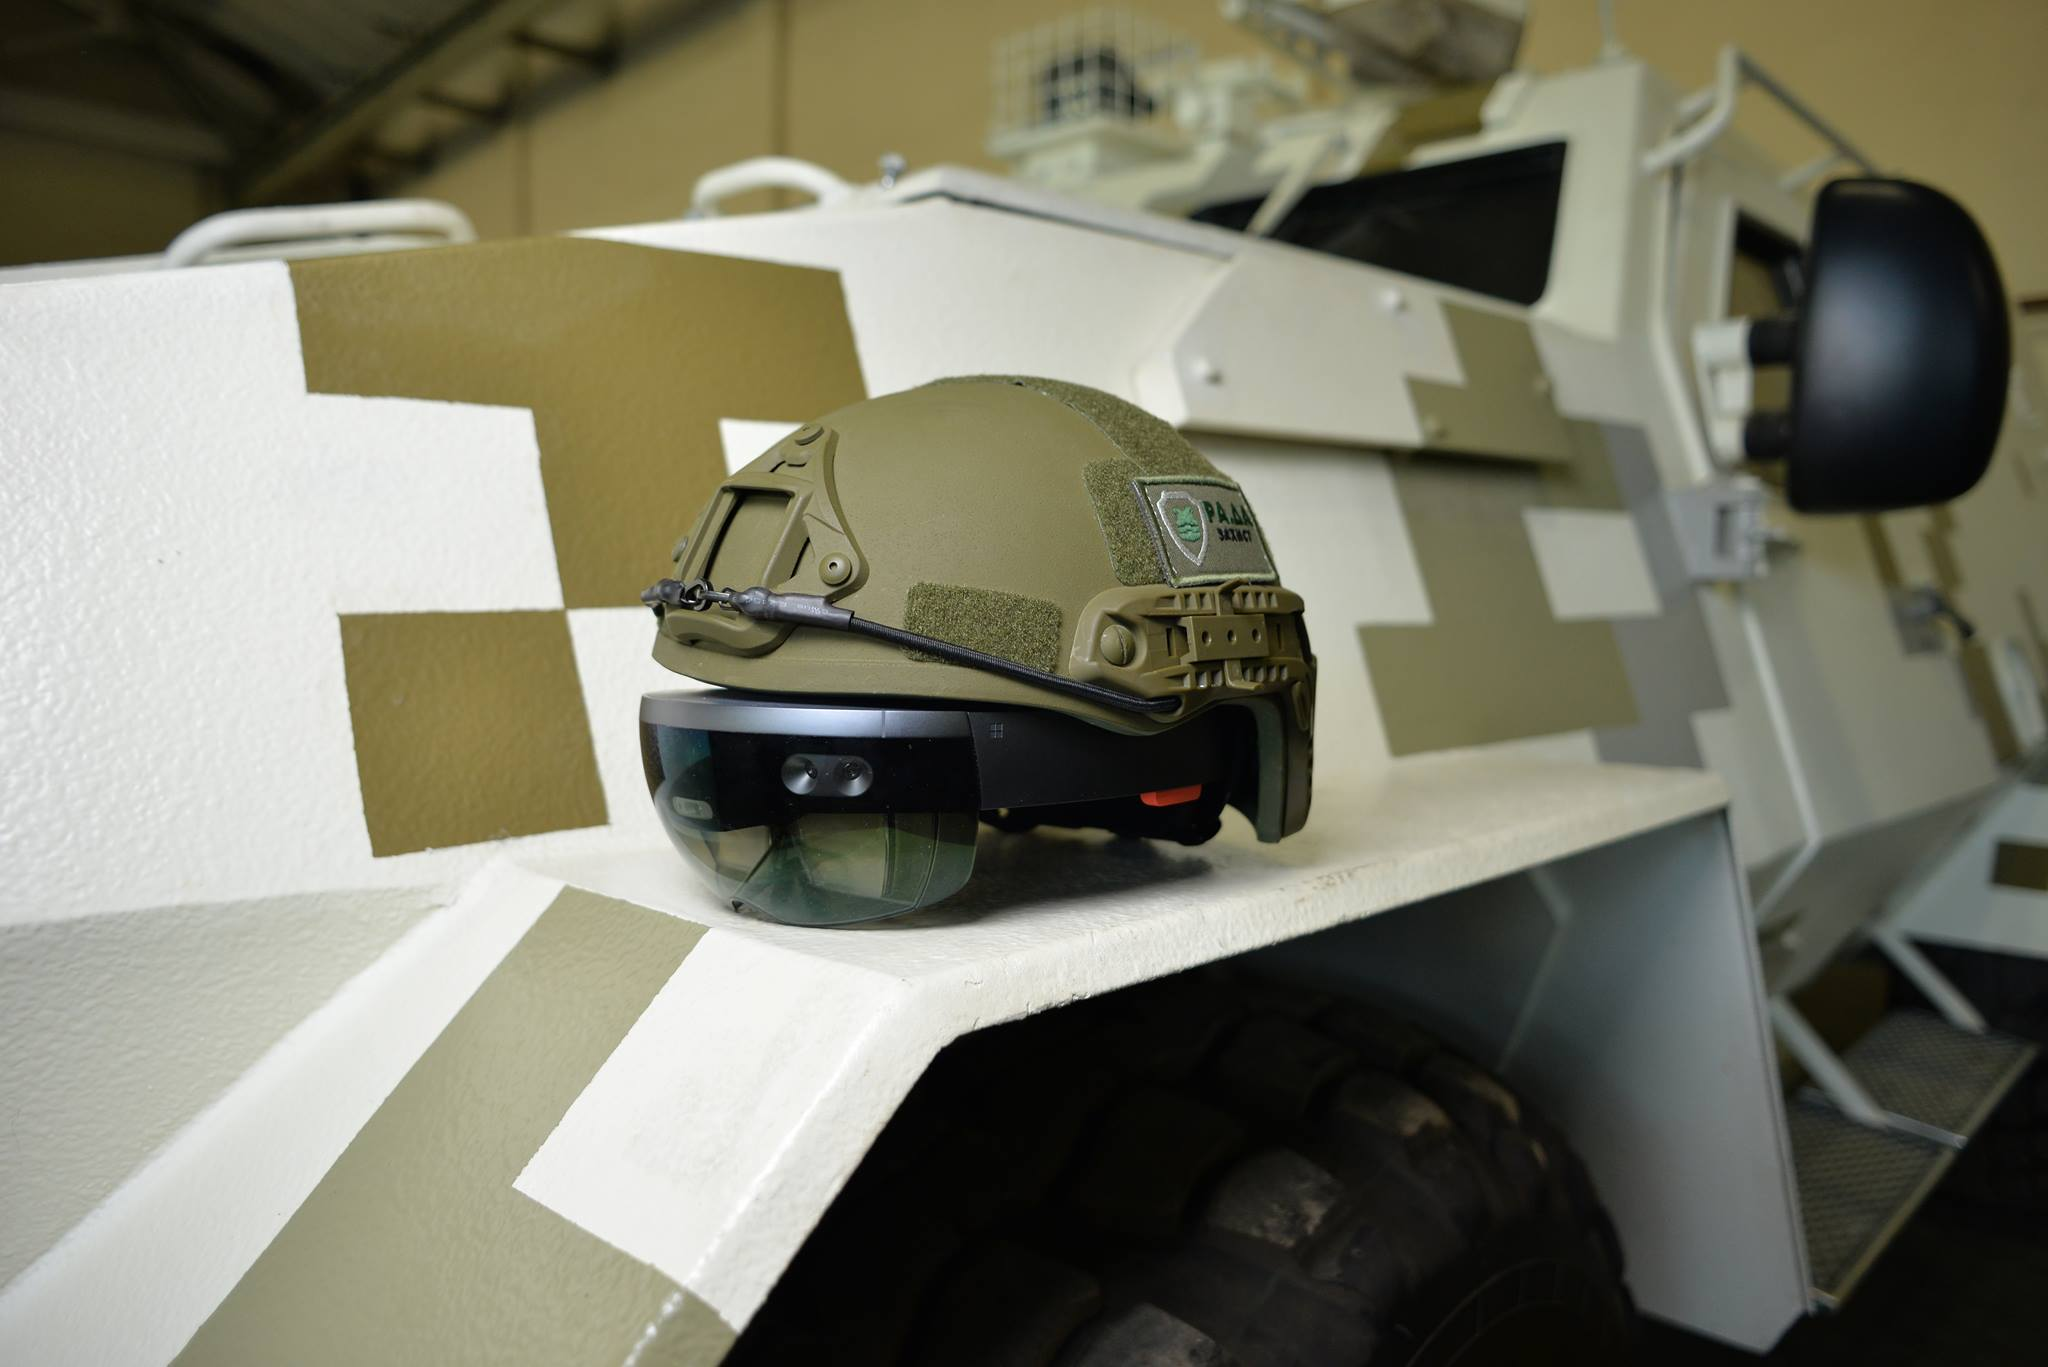 HoloLens gets more battlefield use by Ukranian military 3